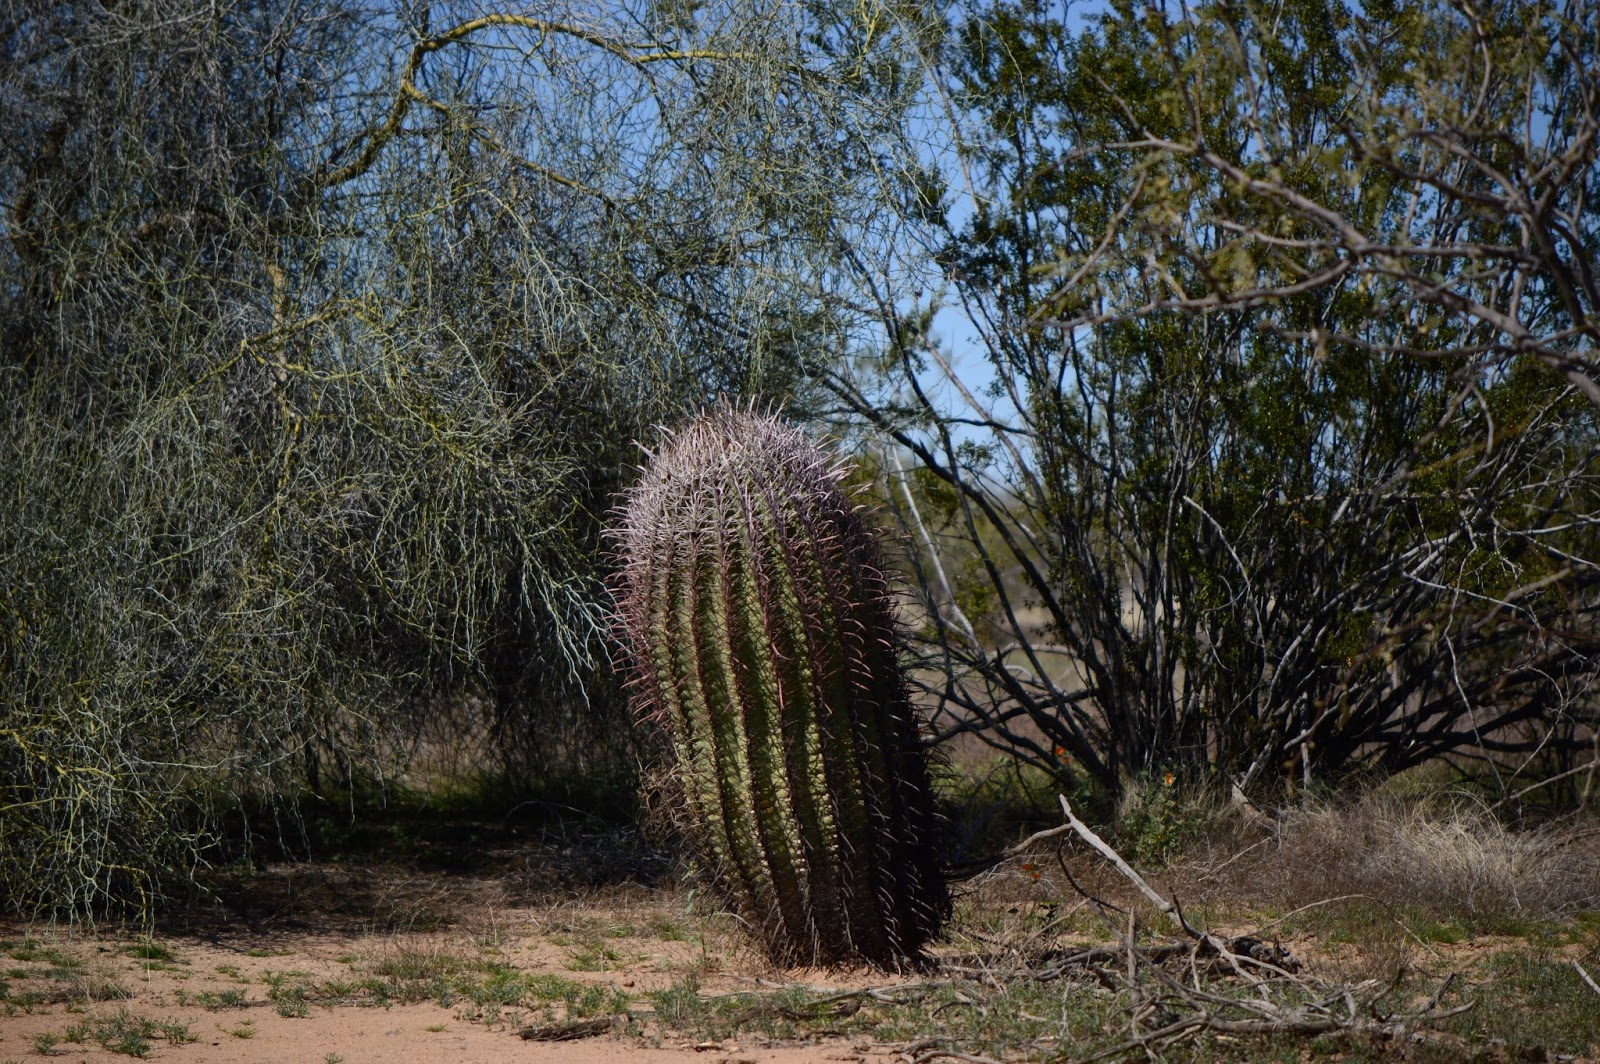 Landscape, barrel cactus, ferrocactus, photography, amy myers